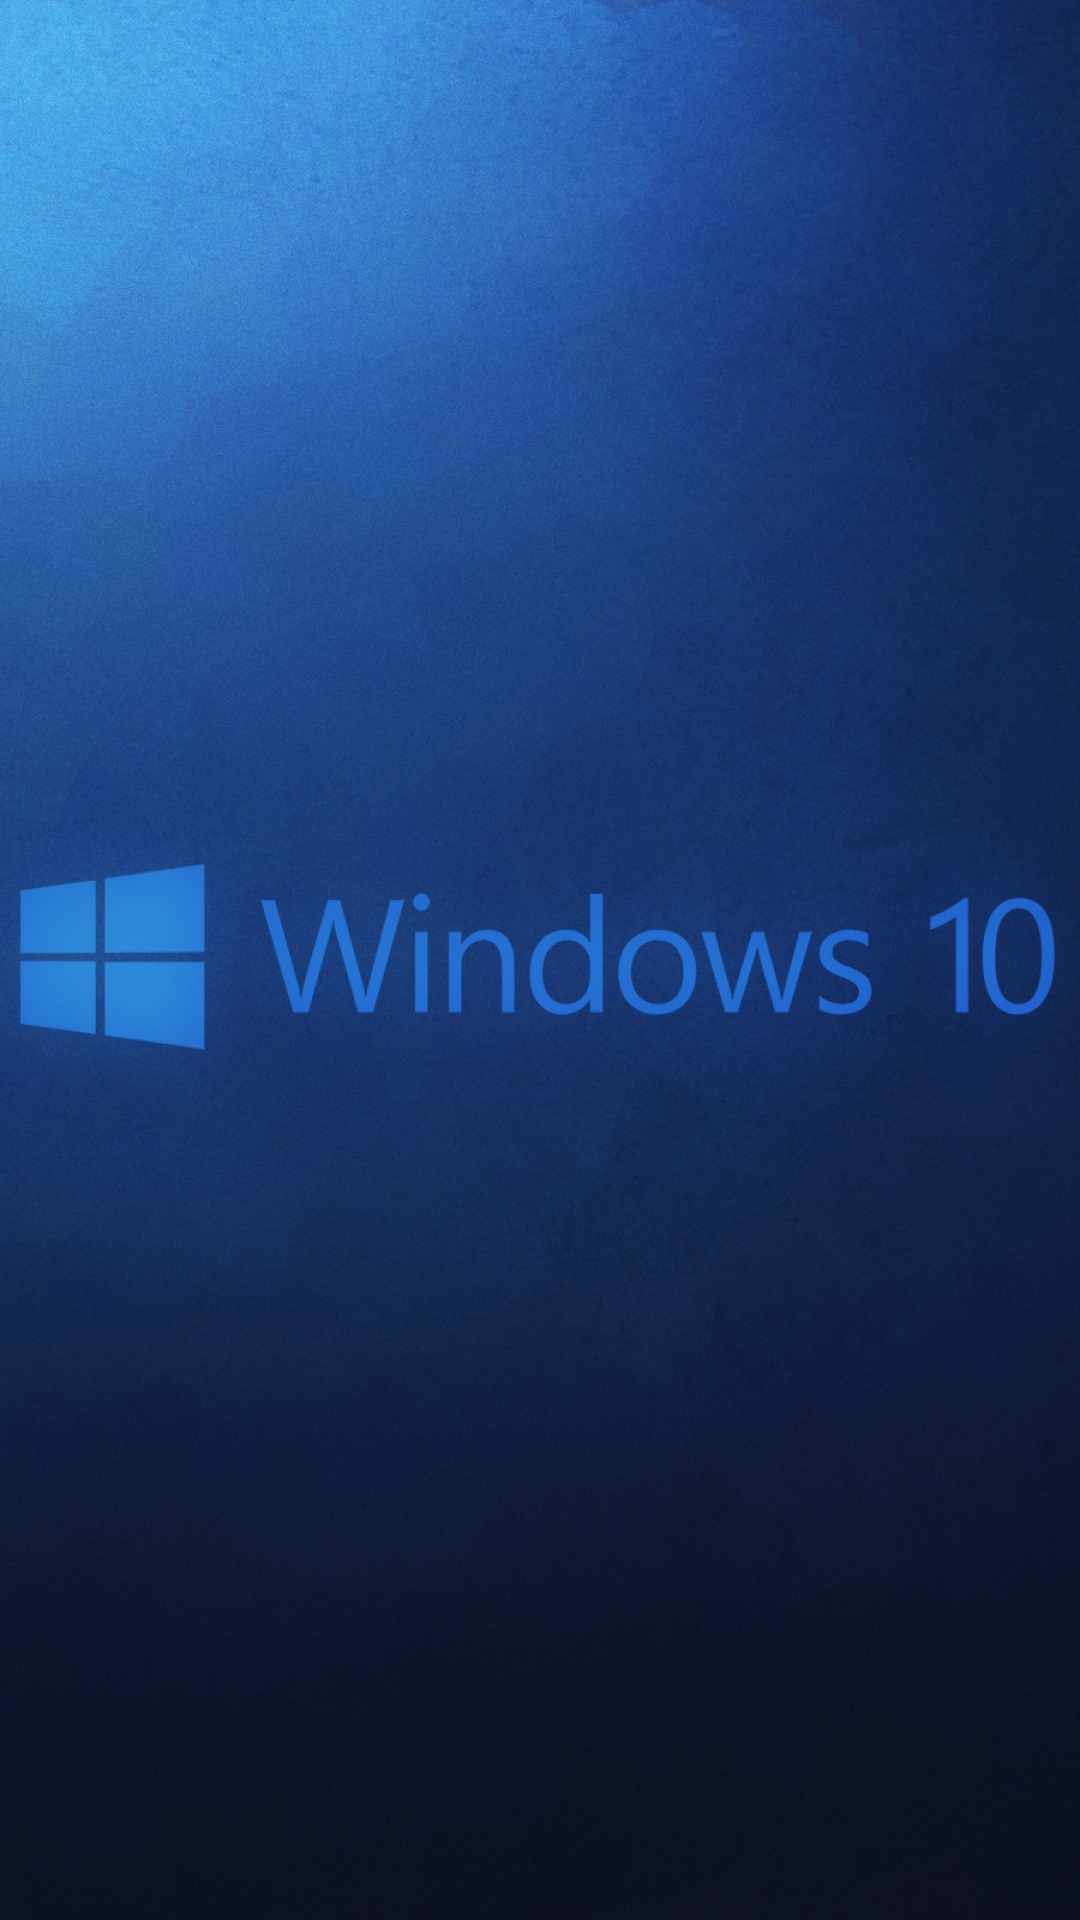 HD Background Windows 10 Wallpaper Microsoft Operating System Blue 1080x1920